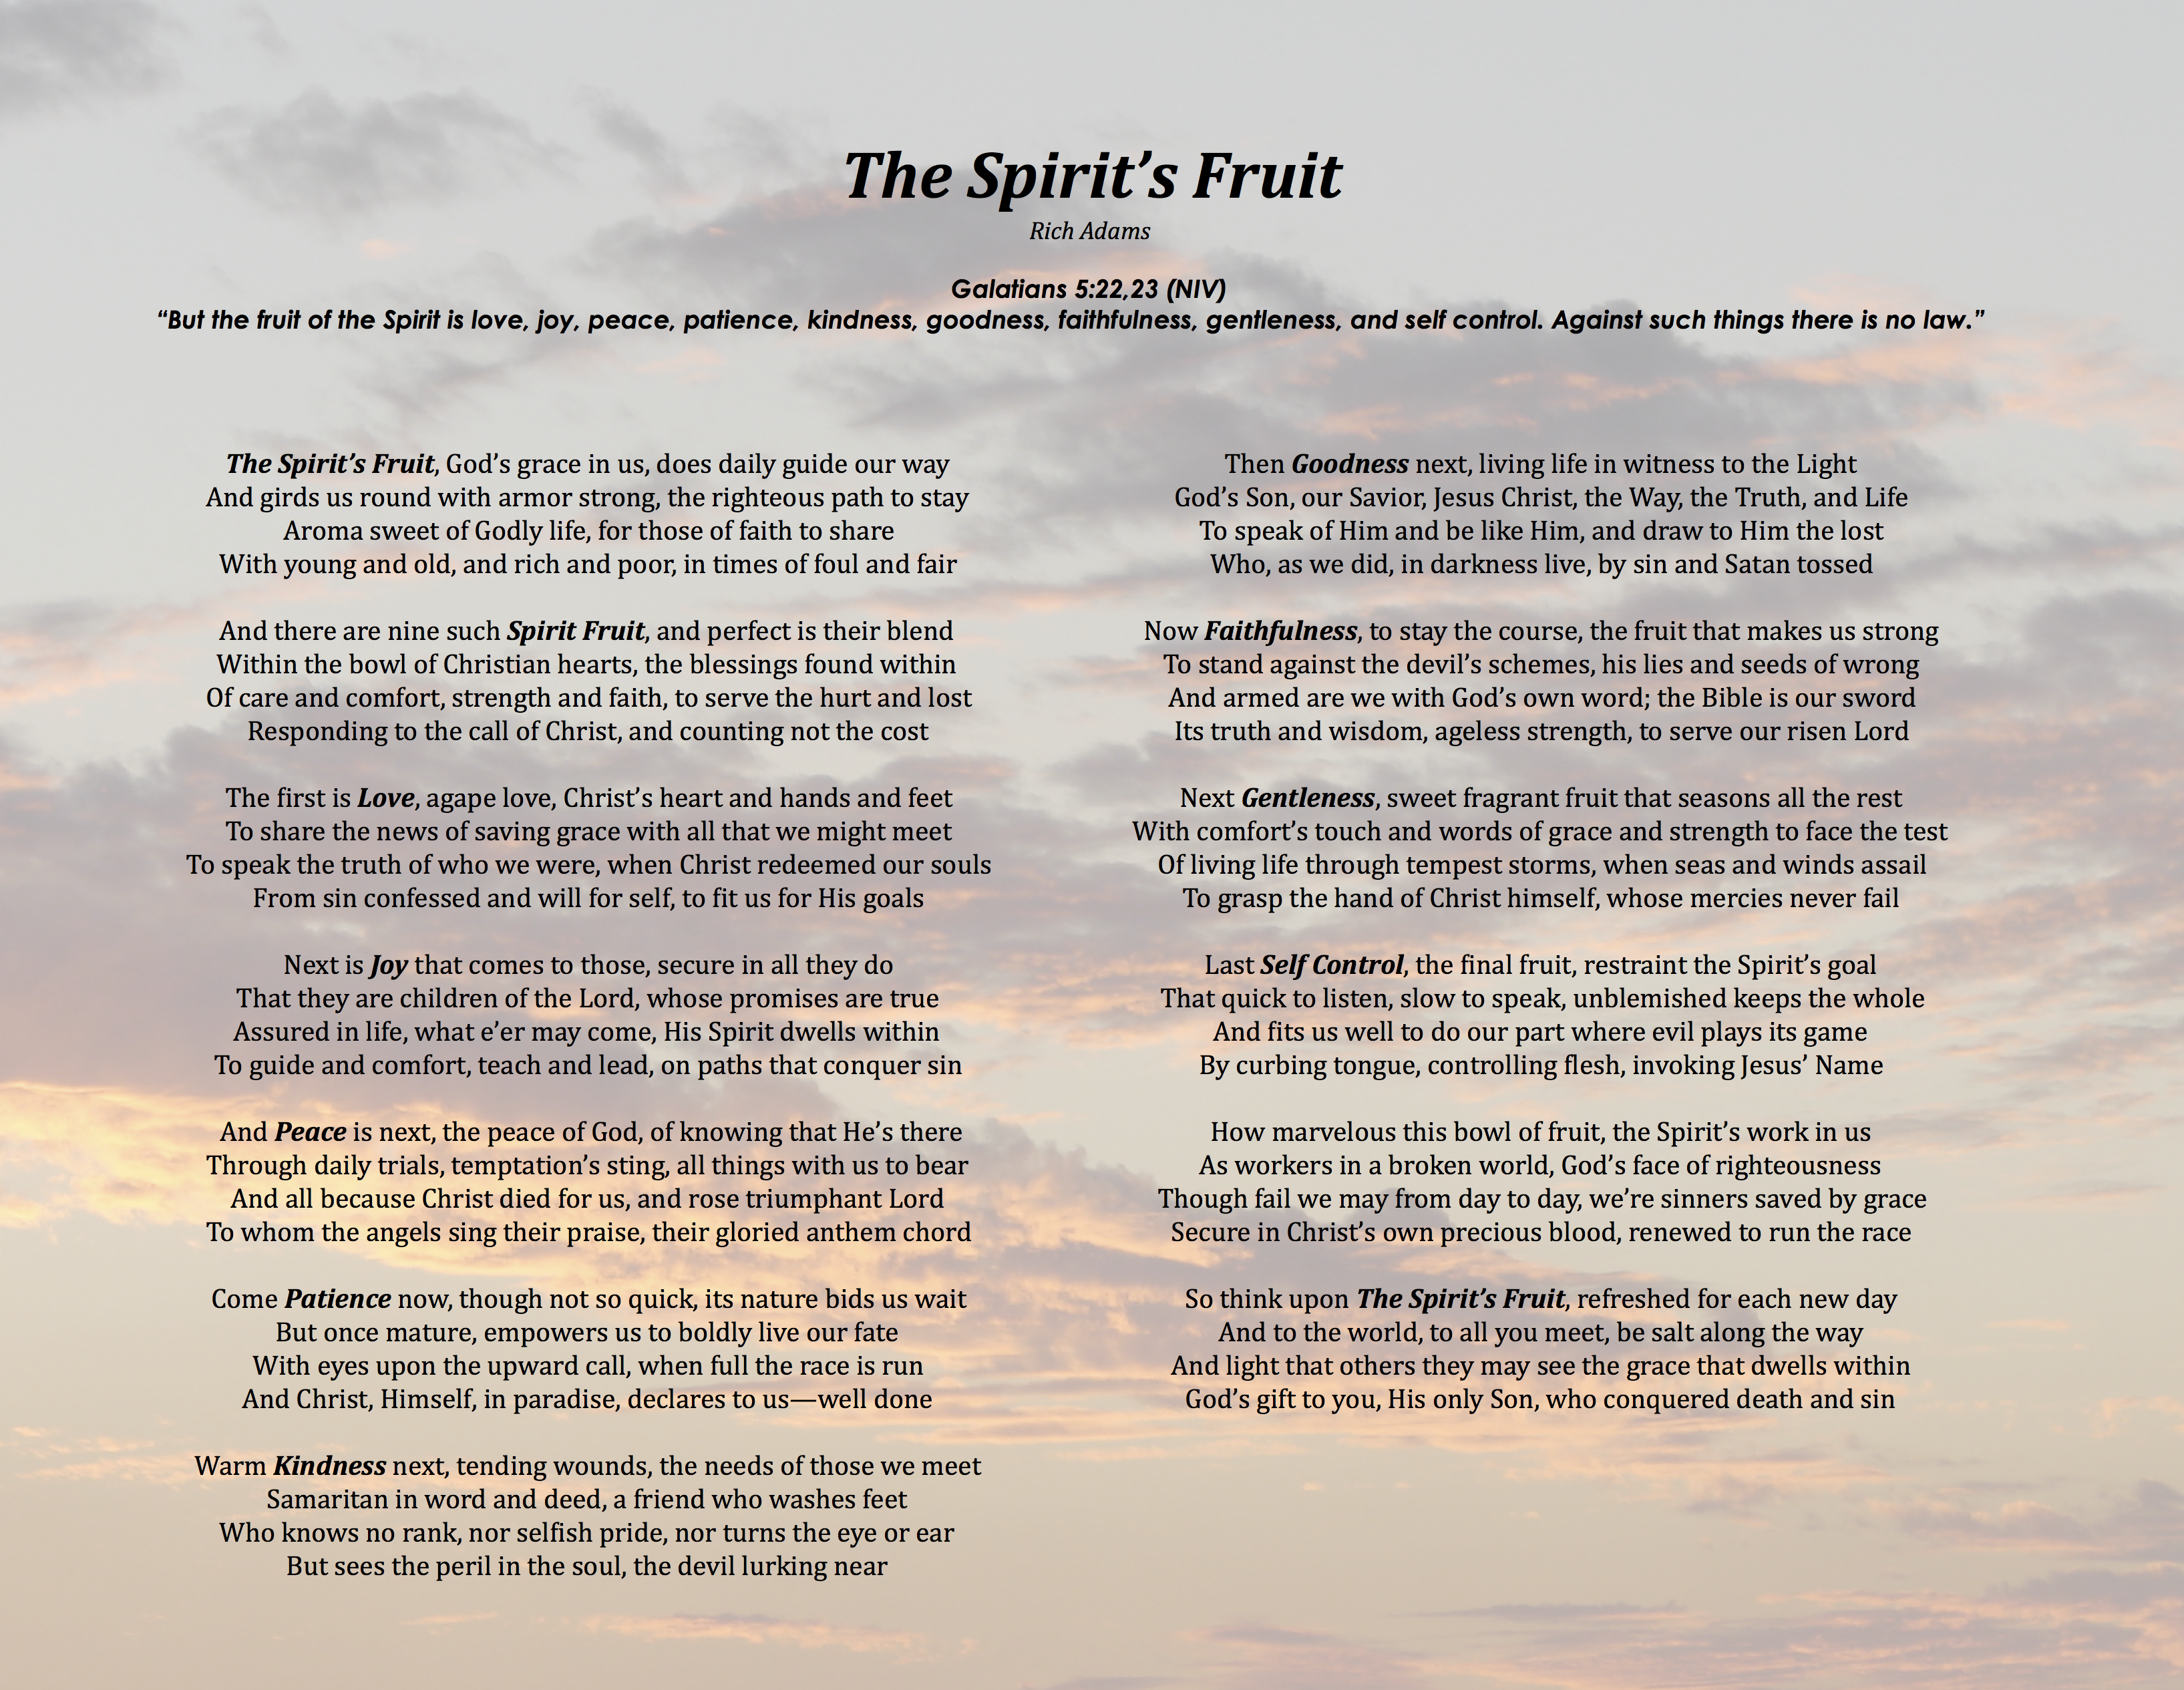 The Spirit's Fruit